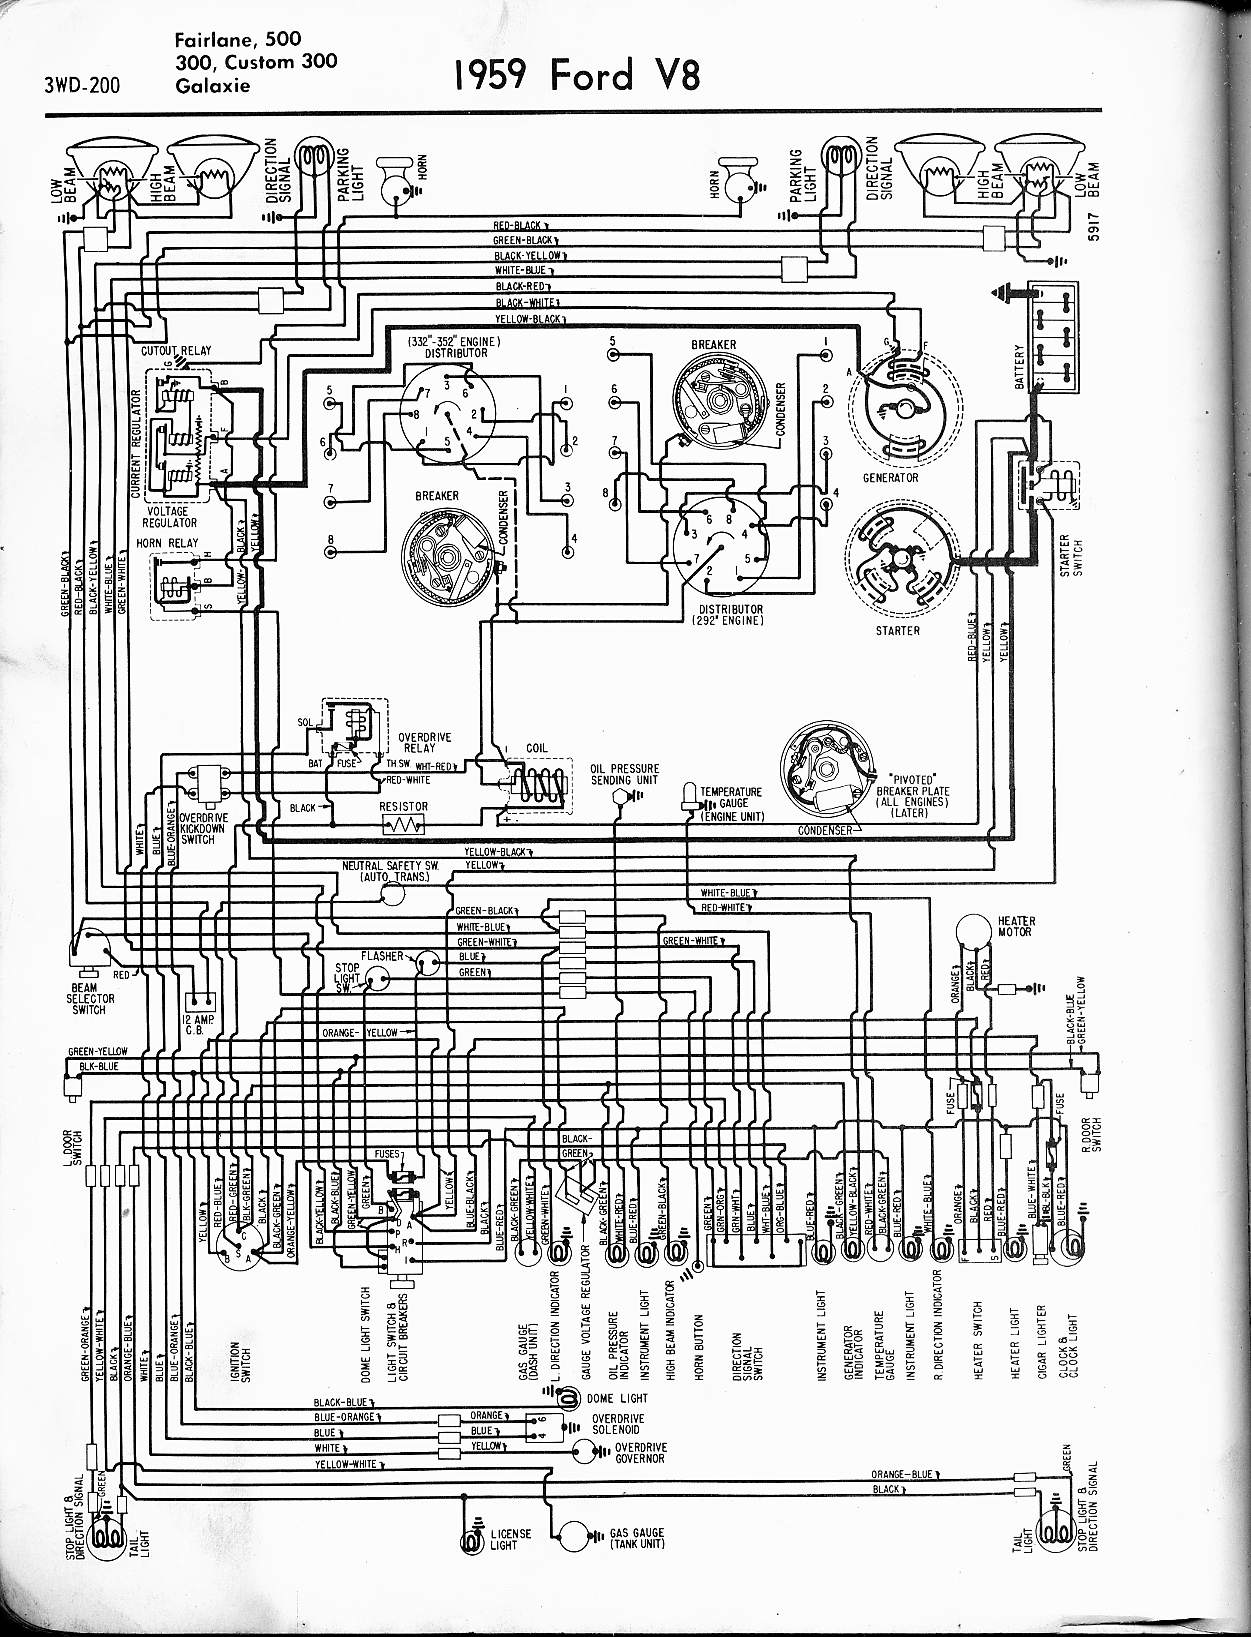 MWire5765 200 57 65 ford wiring diagrams Mercury Wiring Diagram at eliteediting.co